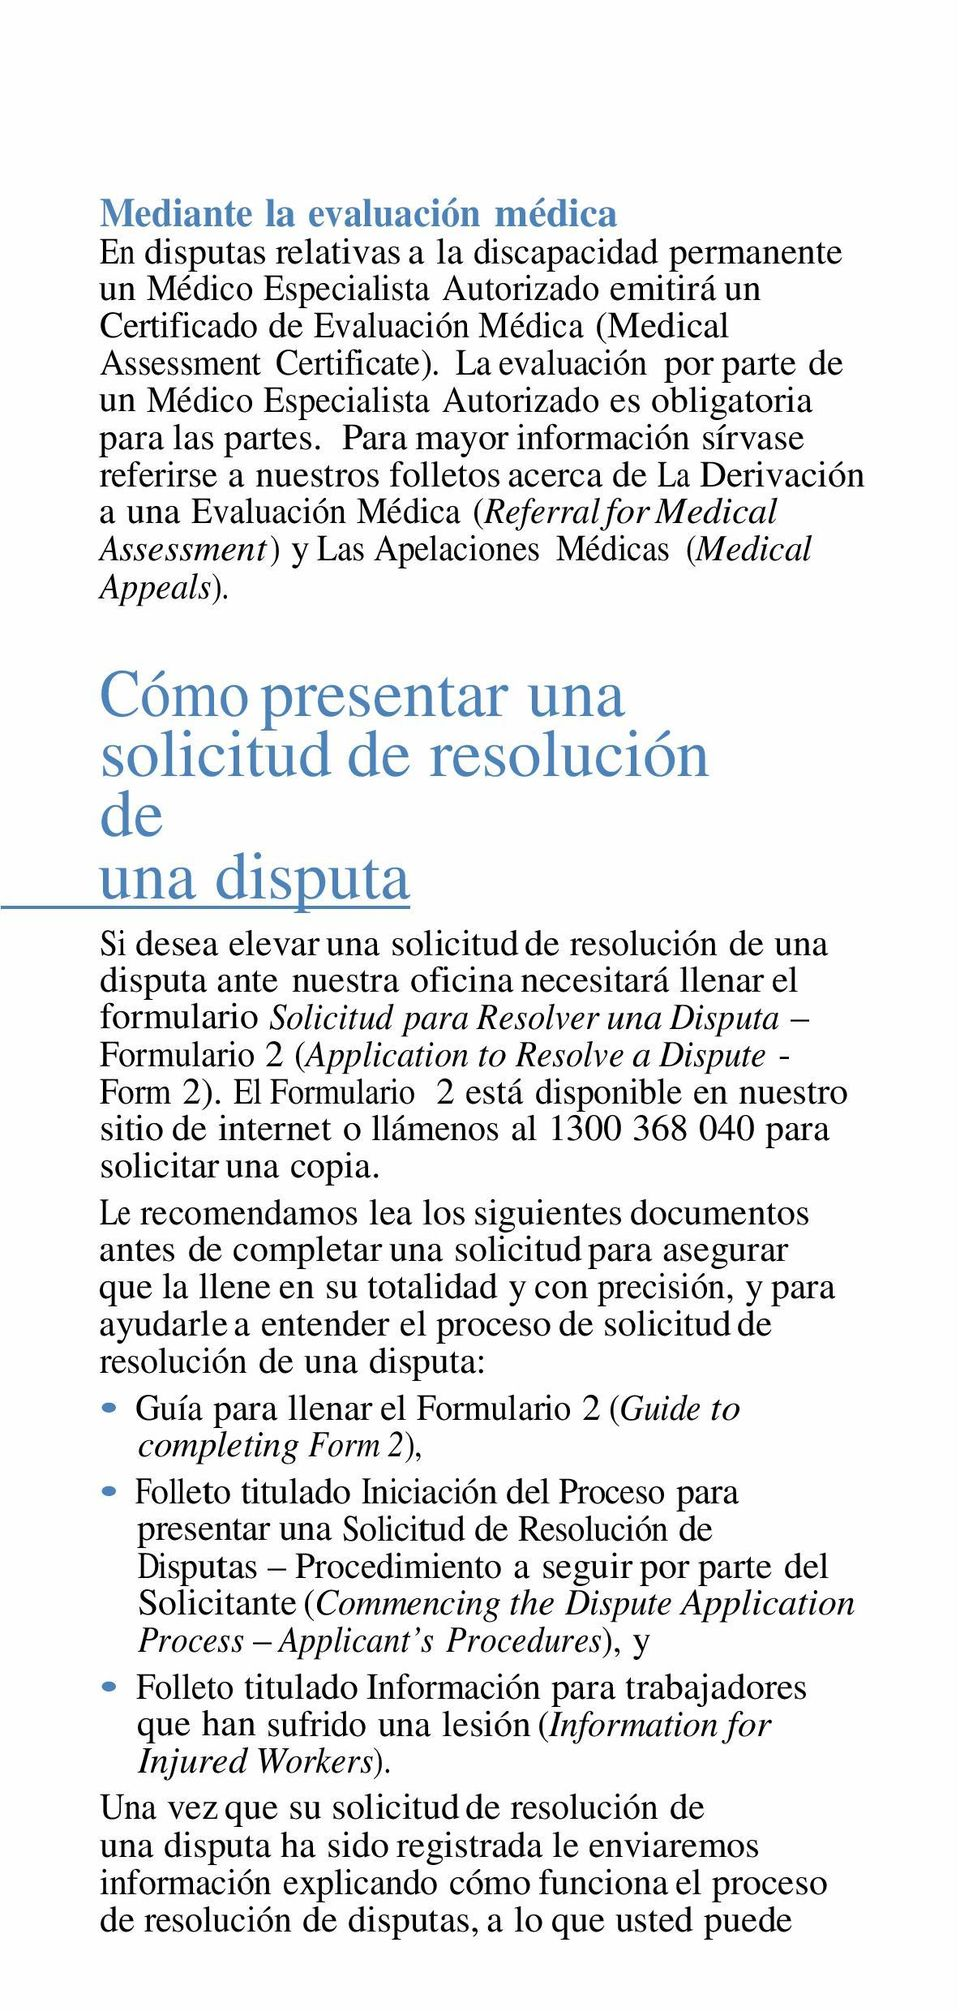 Para mayor información sírvase referirse a nuestros folletos acerca de La Derivación a una Evaluación Médica (Referral for Medical Assessment ) y Las Apelaciones Médicas (Medical Appeals).